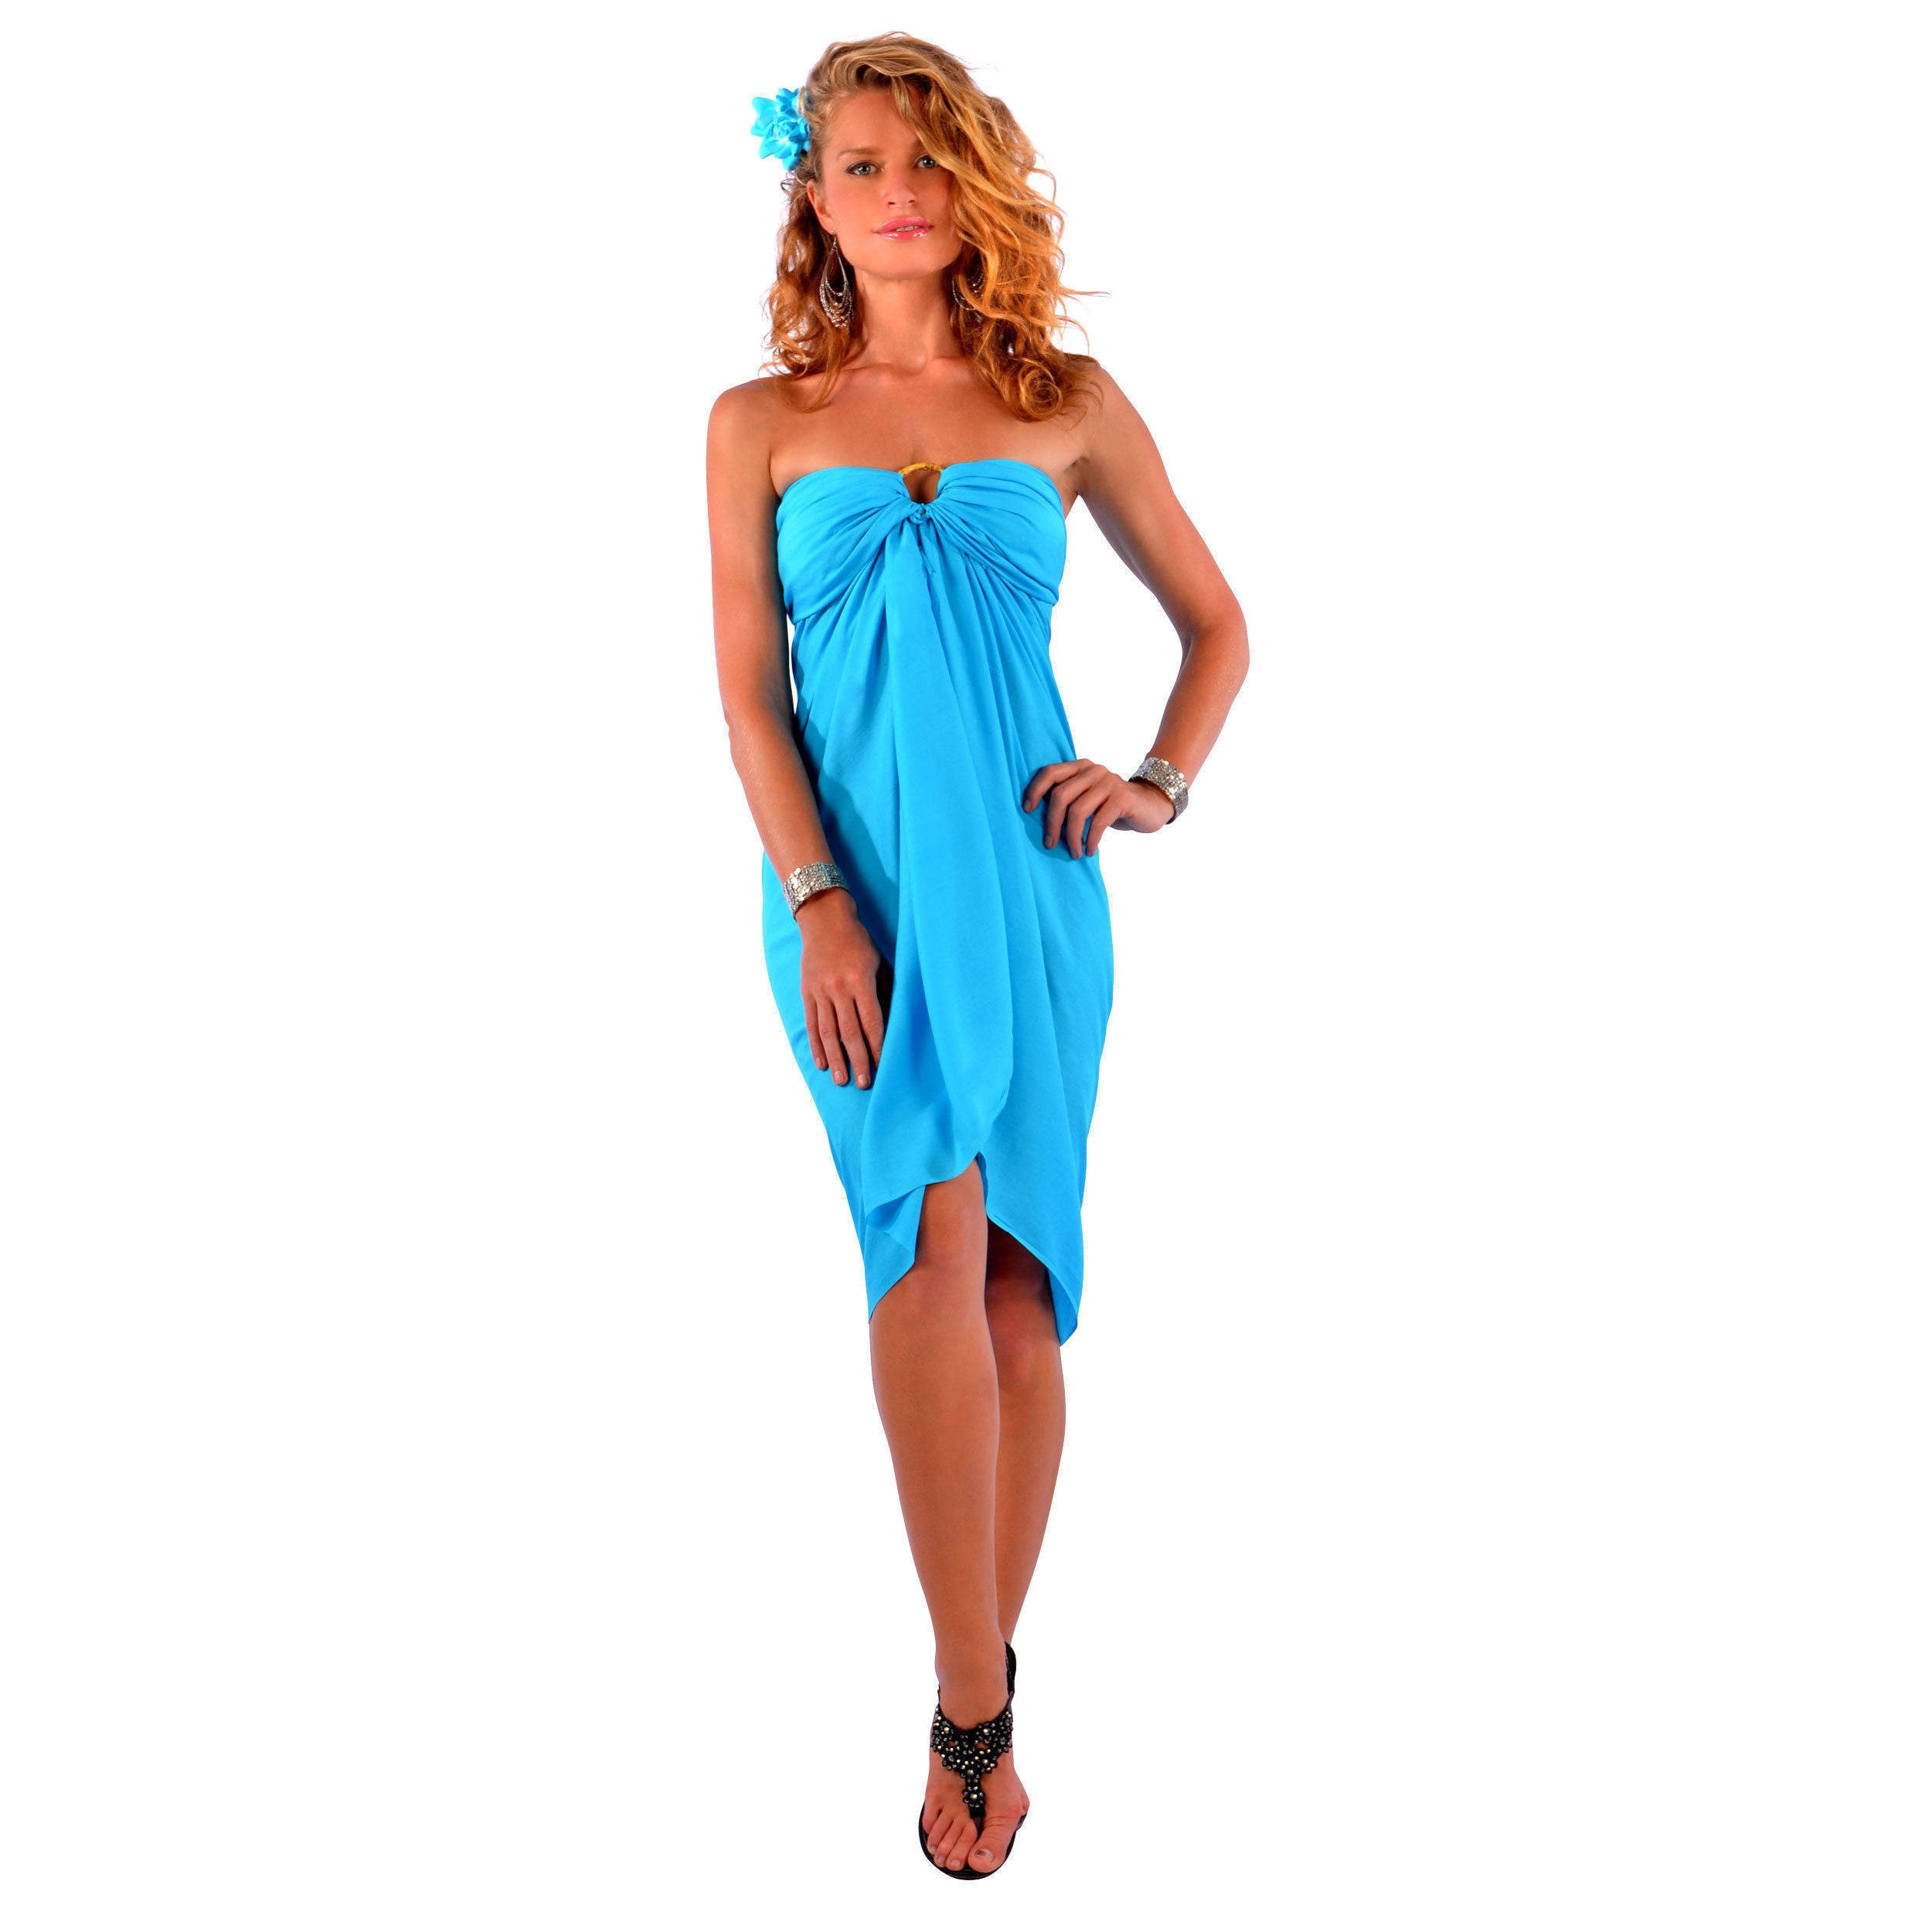 672452292f Shop Handmade 1 World Sarongs Women's Fringeless Solid Sarong (Indonesia) -  On Sale - Free Shipping On Orders Over $45 - Overstock - 4141645